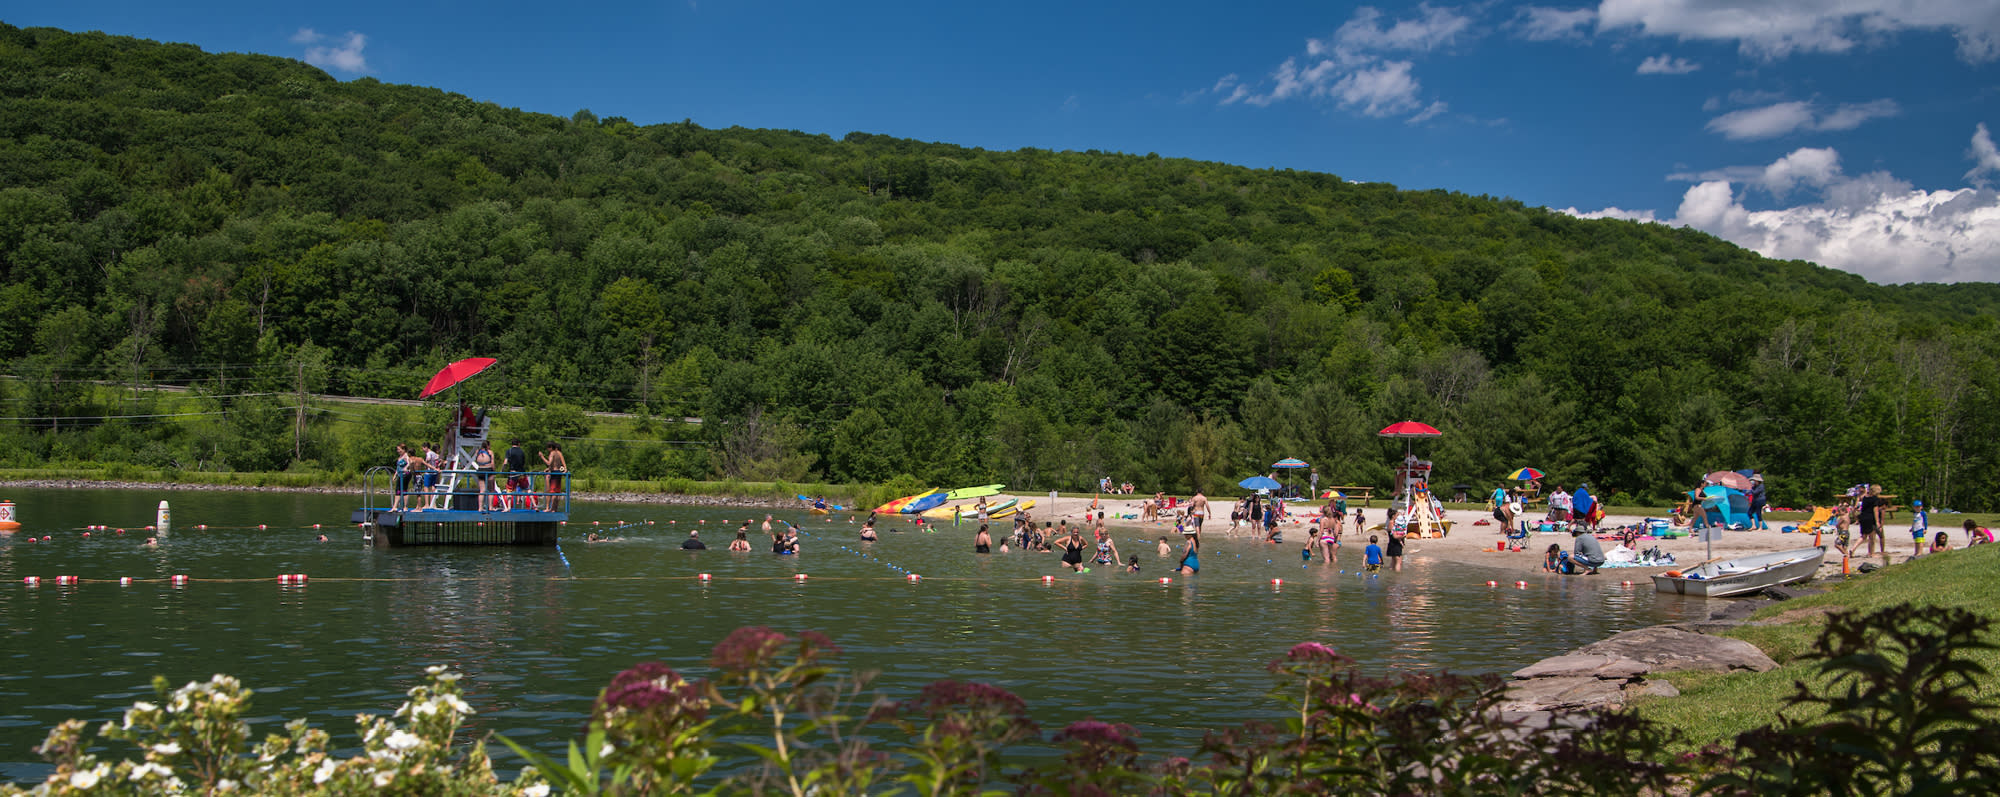 People jumping into the water at Belleayre Beach at Pine Hill Lake